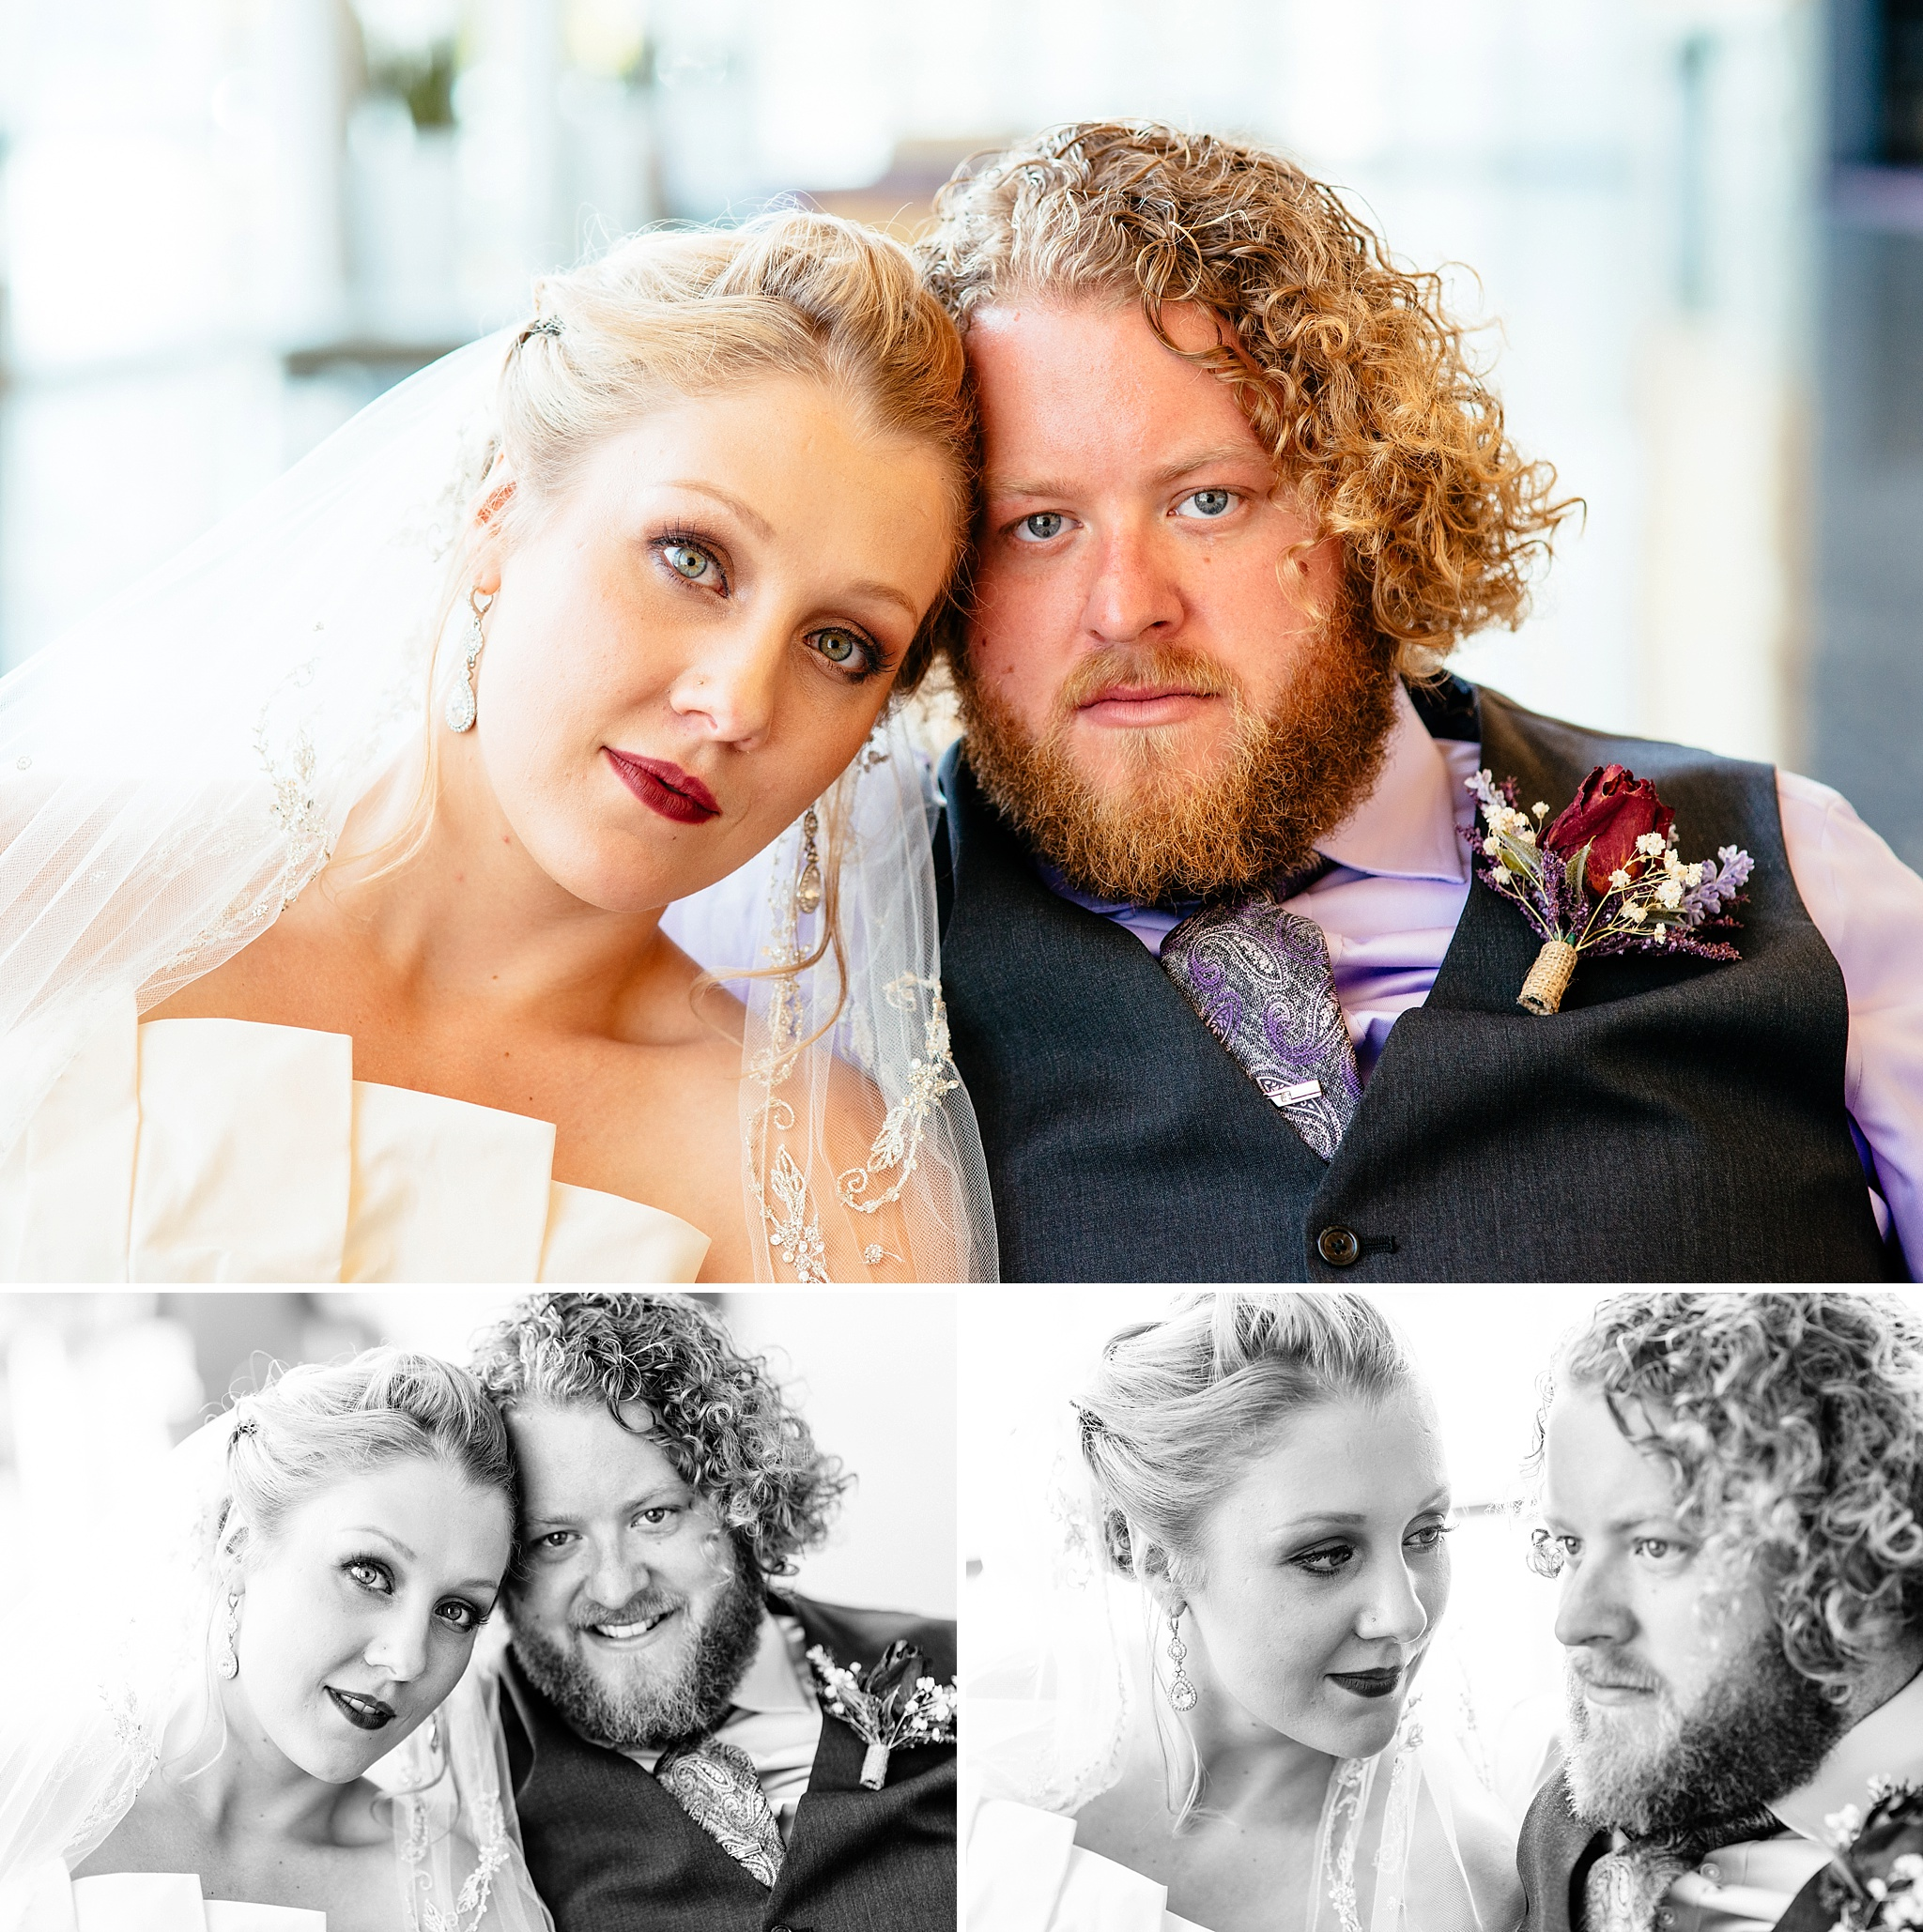 Bride and groom portraits close-up in color and black and white.